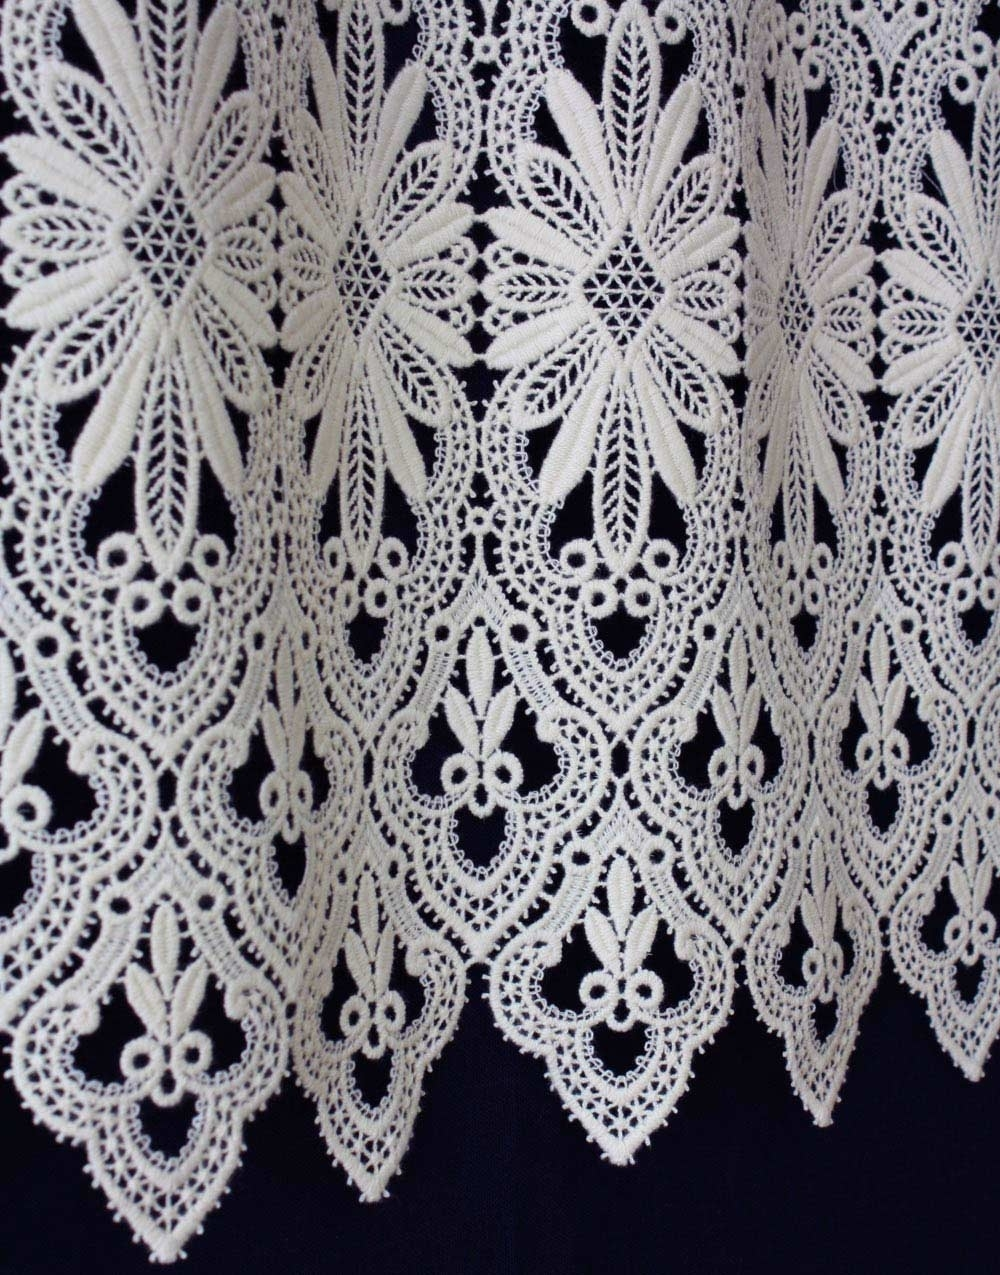 macrame lace cafe curtain & valance curtain with Macrame Lace Designs